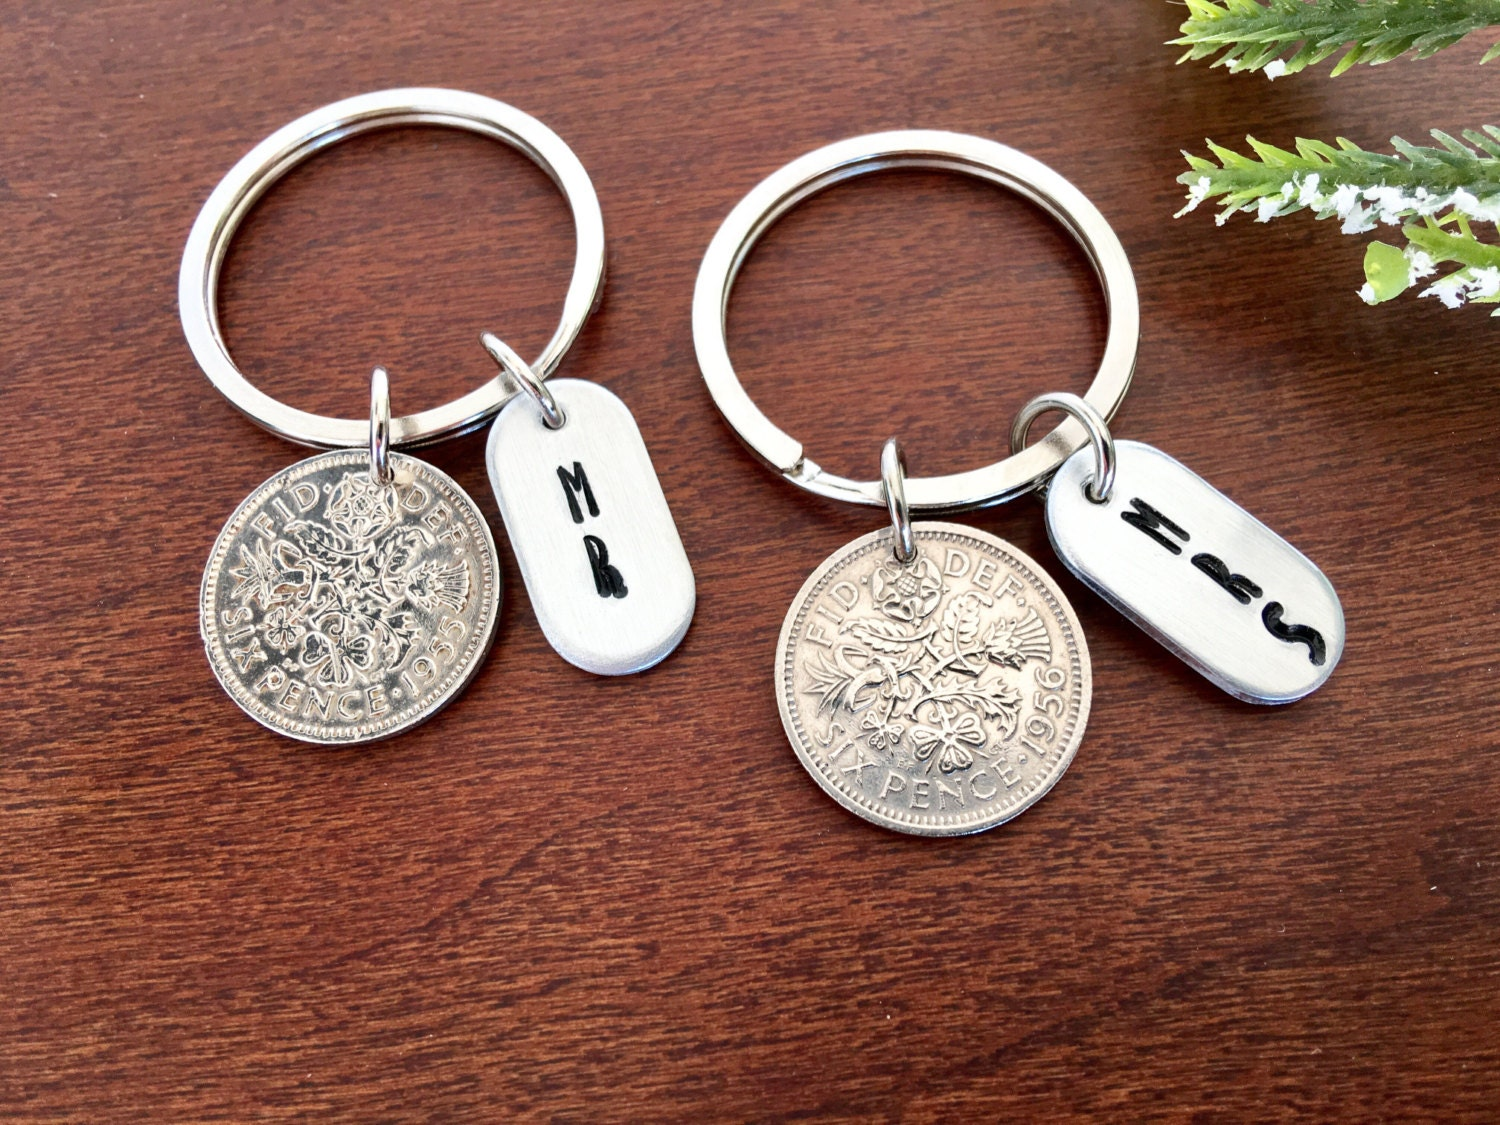 His And Hers Wedding Gift Ideas: Mr Mrs Gift Idea Wedding Gift Ideas For Couple His And Hers